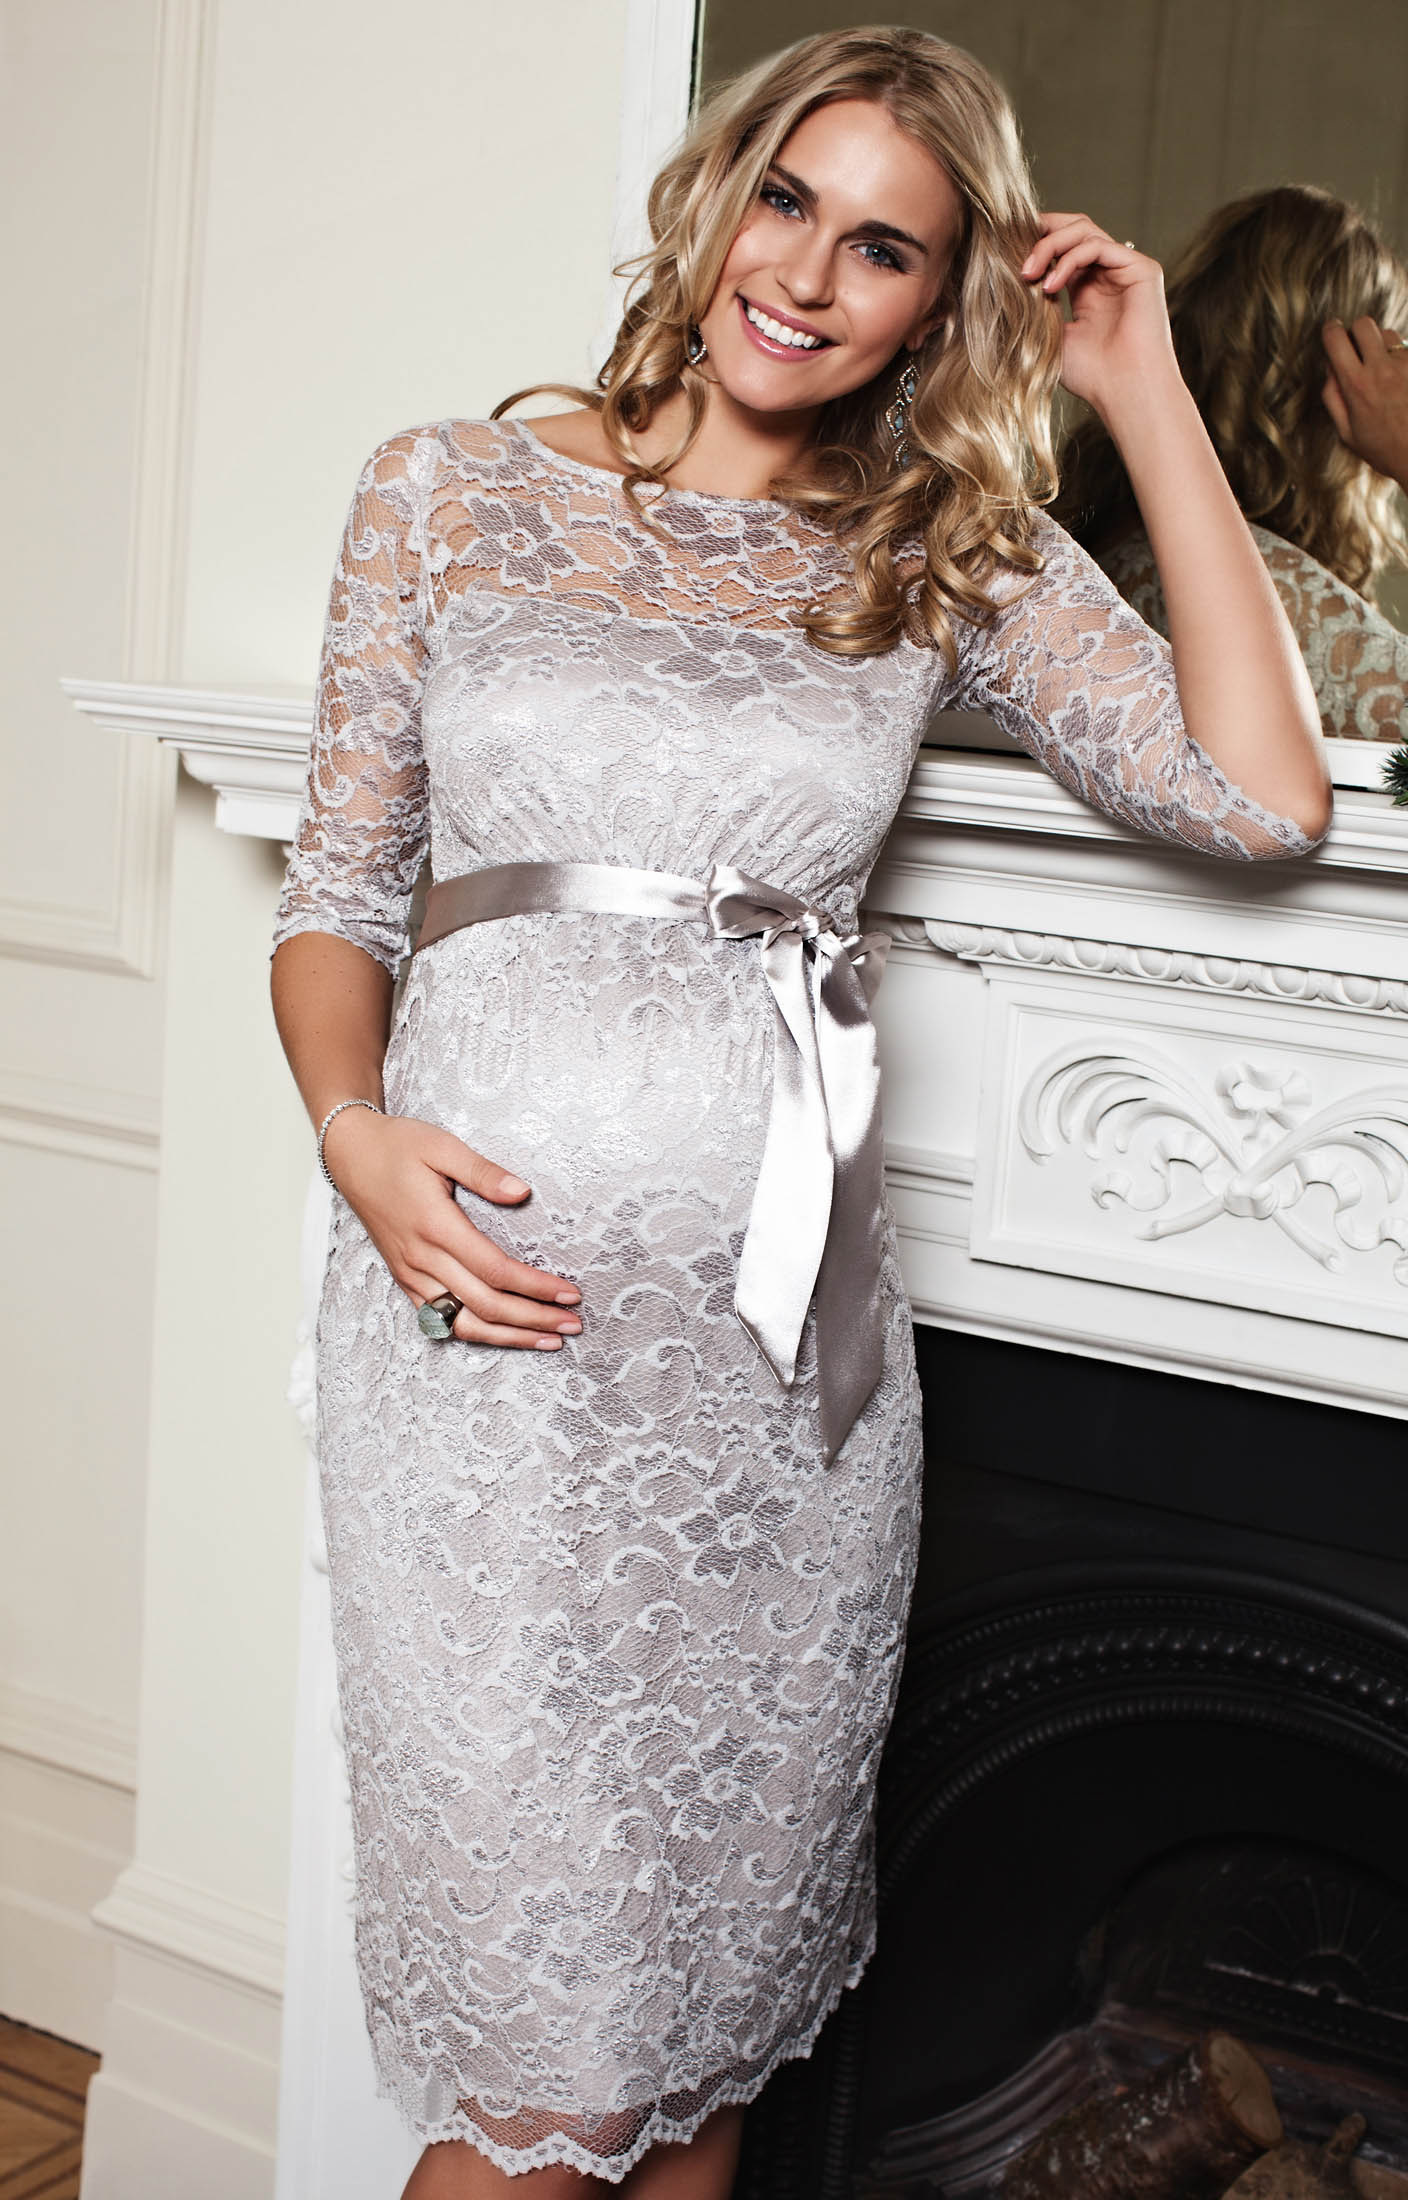 Full Size of Baby Shower:sturdy Stylish Maternity Dresses For Baby Shower Picture Ideas Stylish Maternity Dresses For Baby Shower Amelia Maternity Dress Short Silver Moonbeam By Tiffany Rose